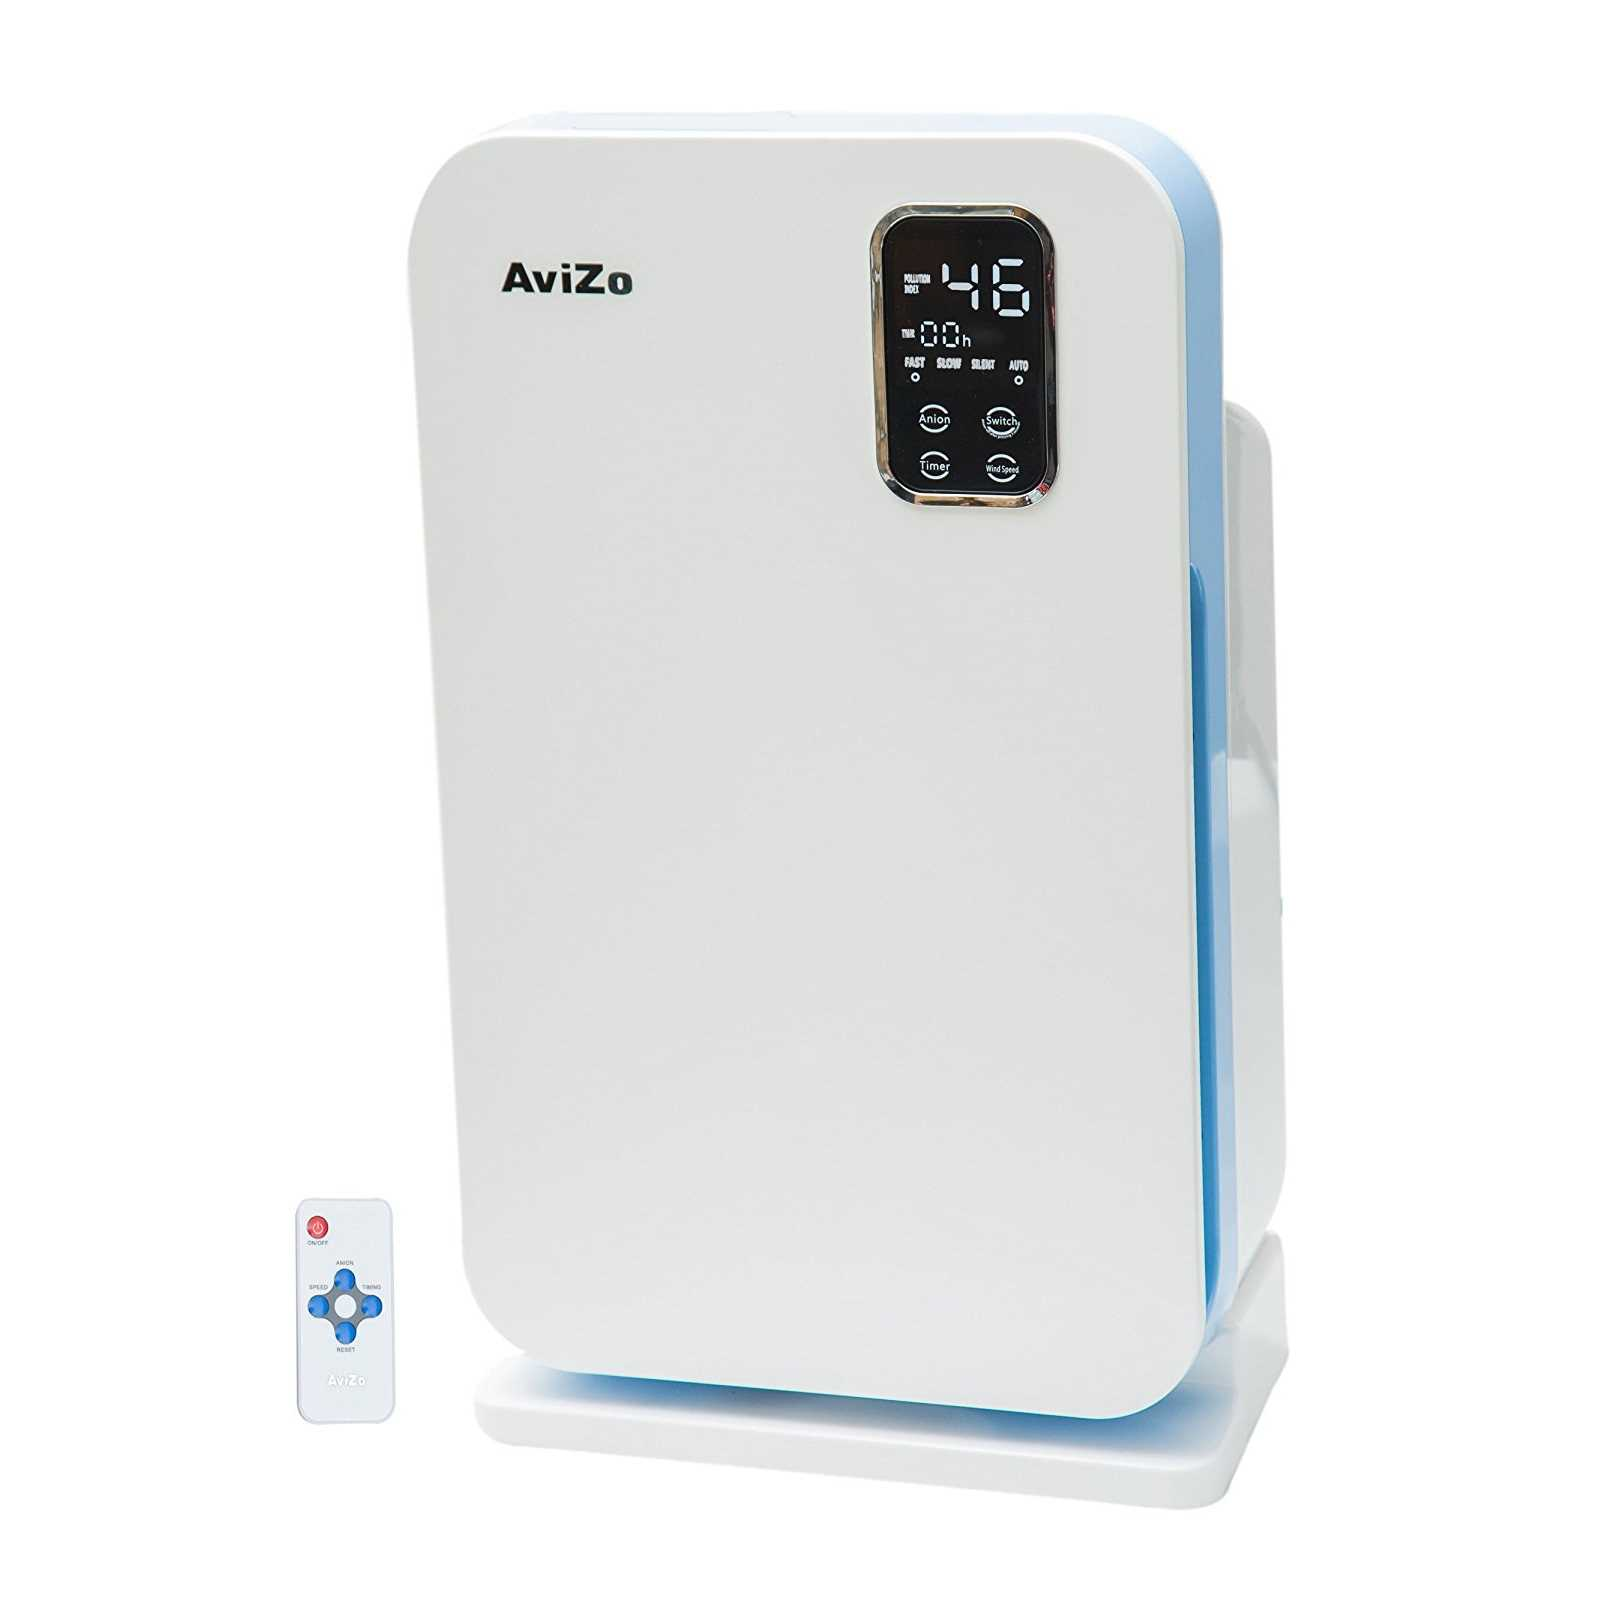 Avizo A1602 Room Air Purifier